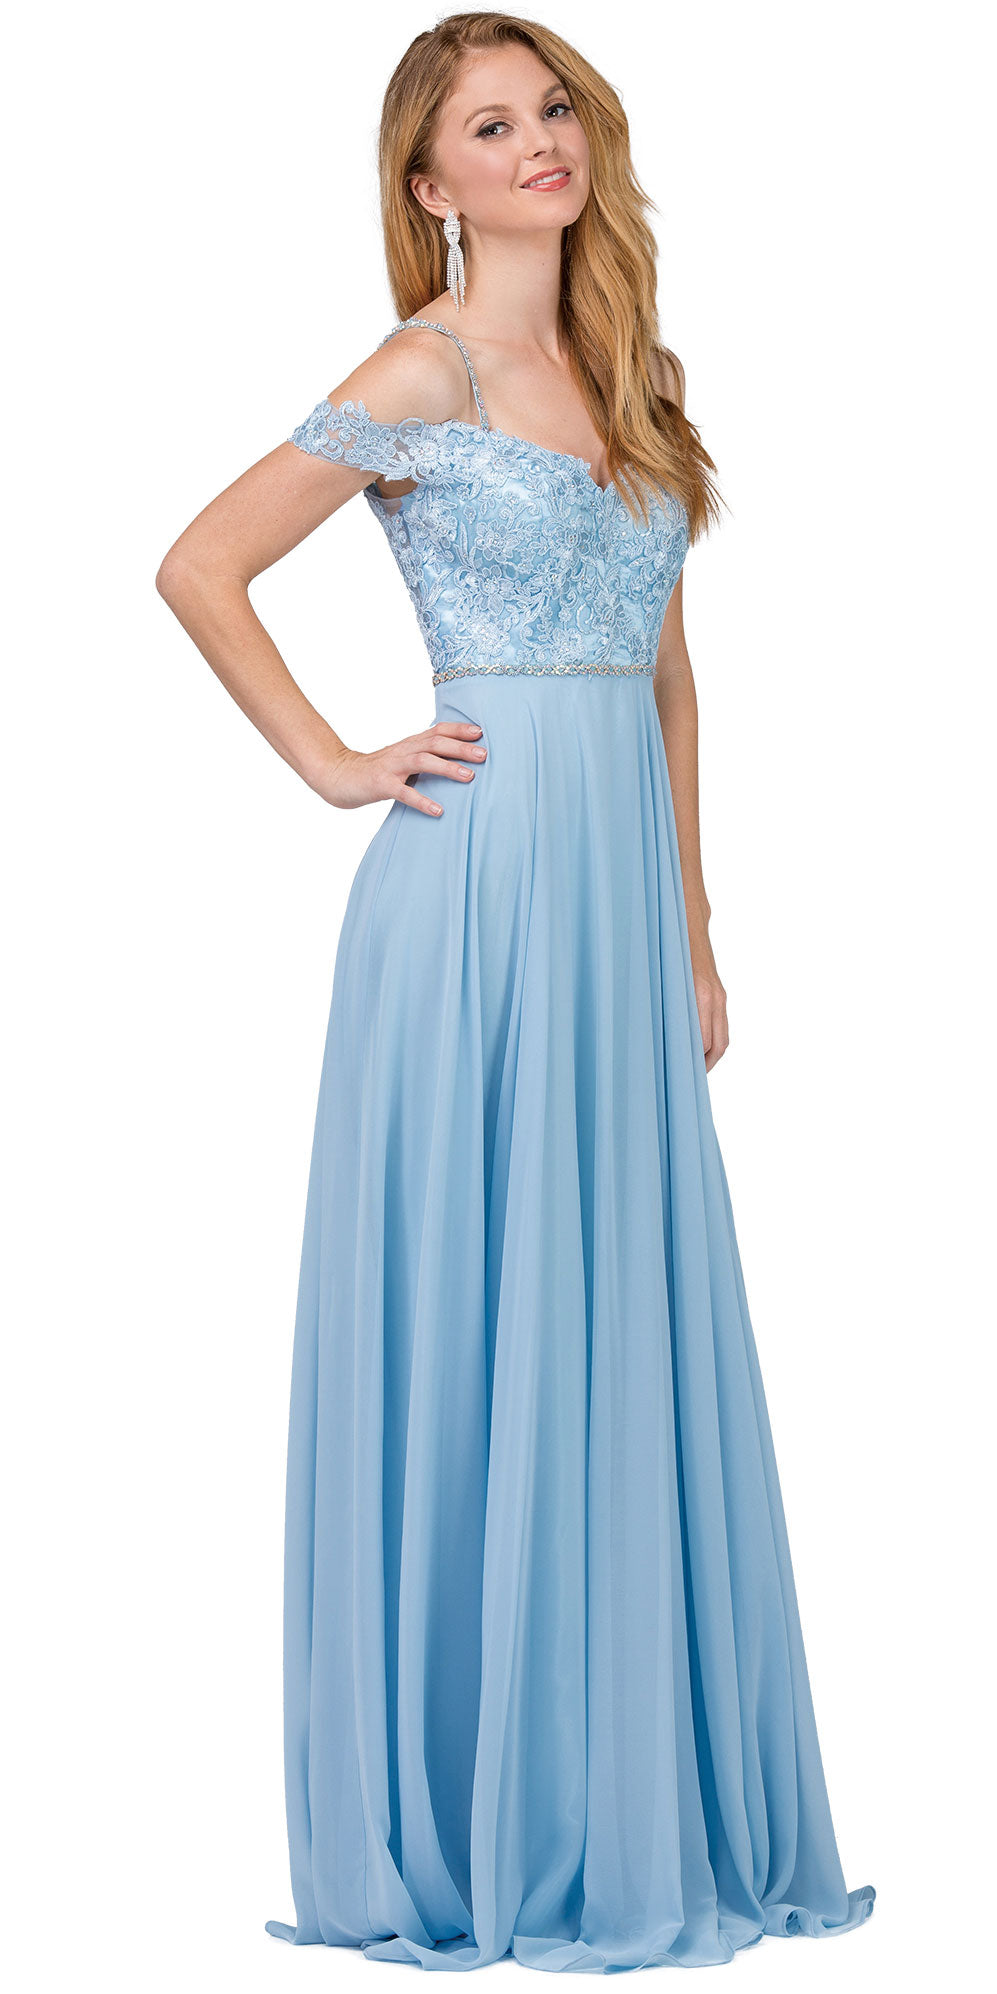 Main image of Cold Shoulder Beaded Lace Bodice Long Prom Dress